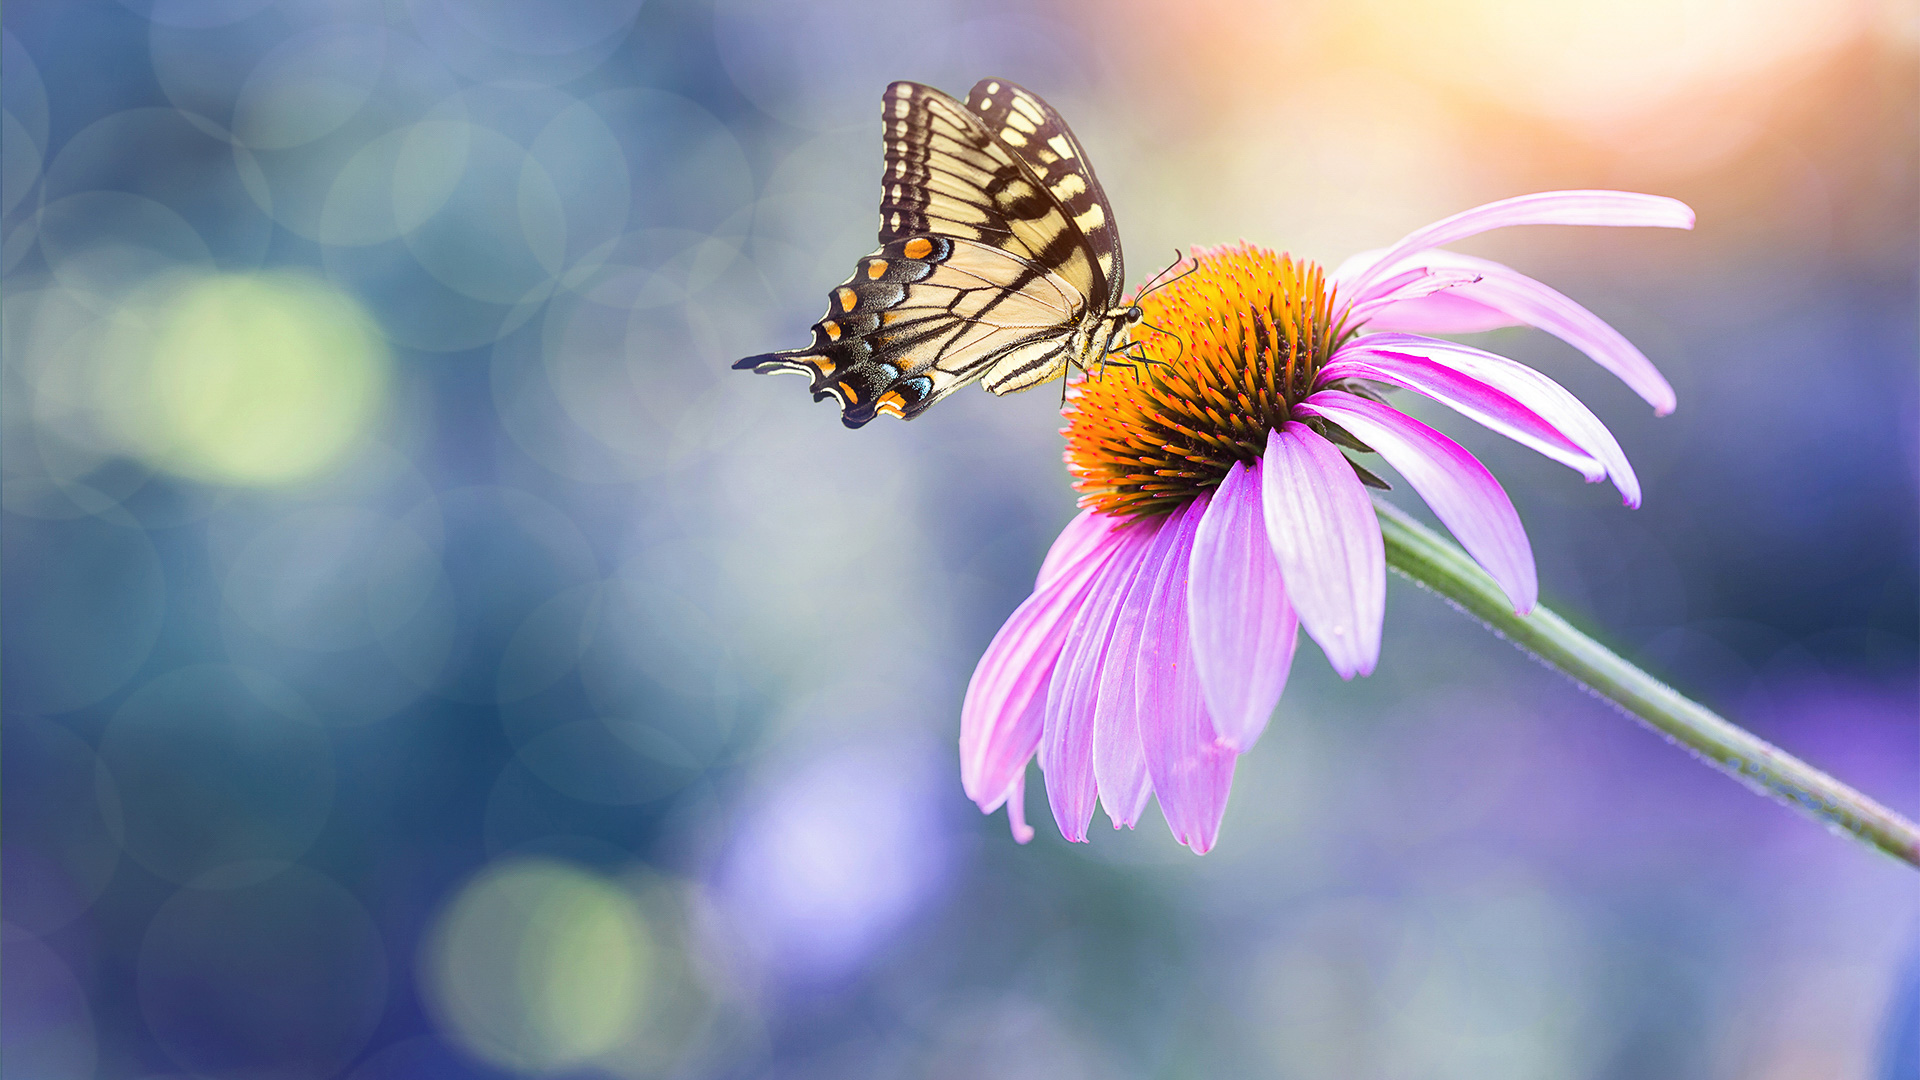 Rule of thirds picture of butterfly and flower